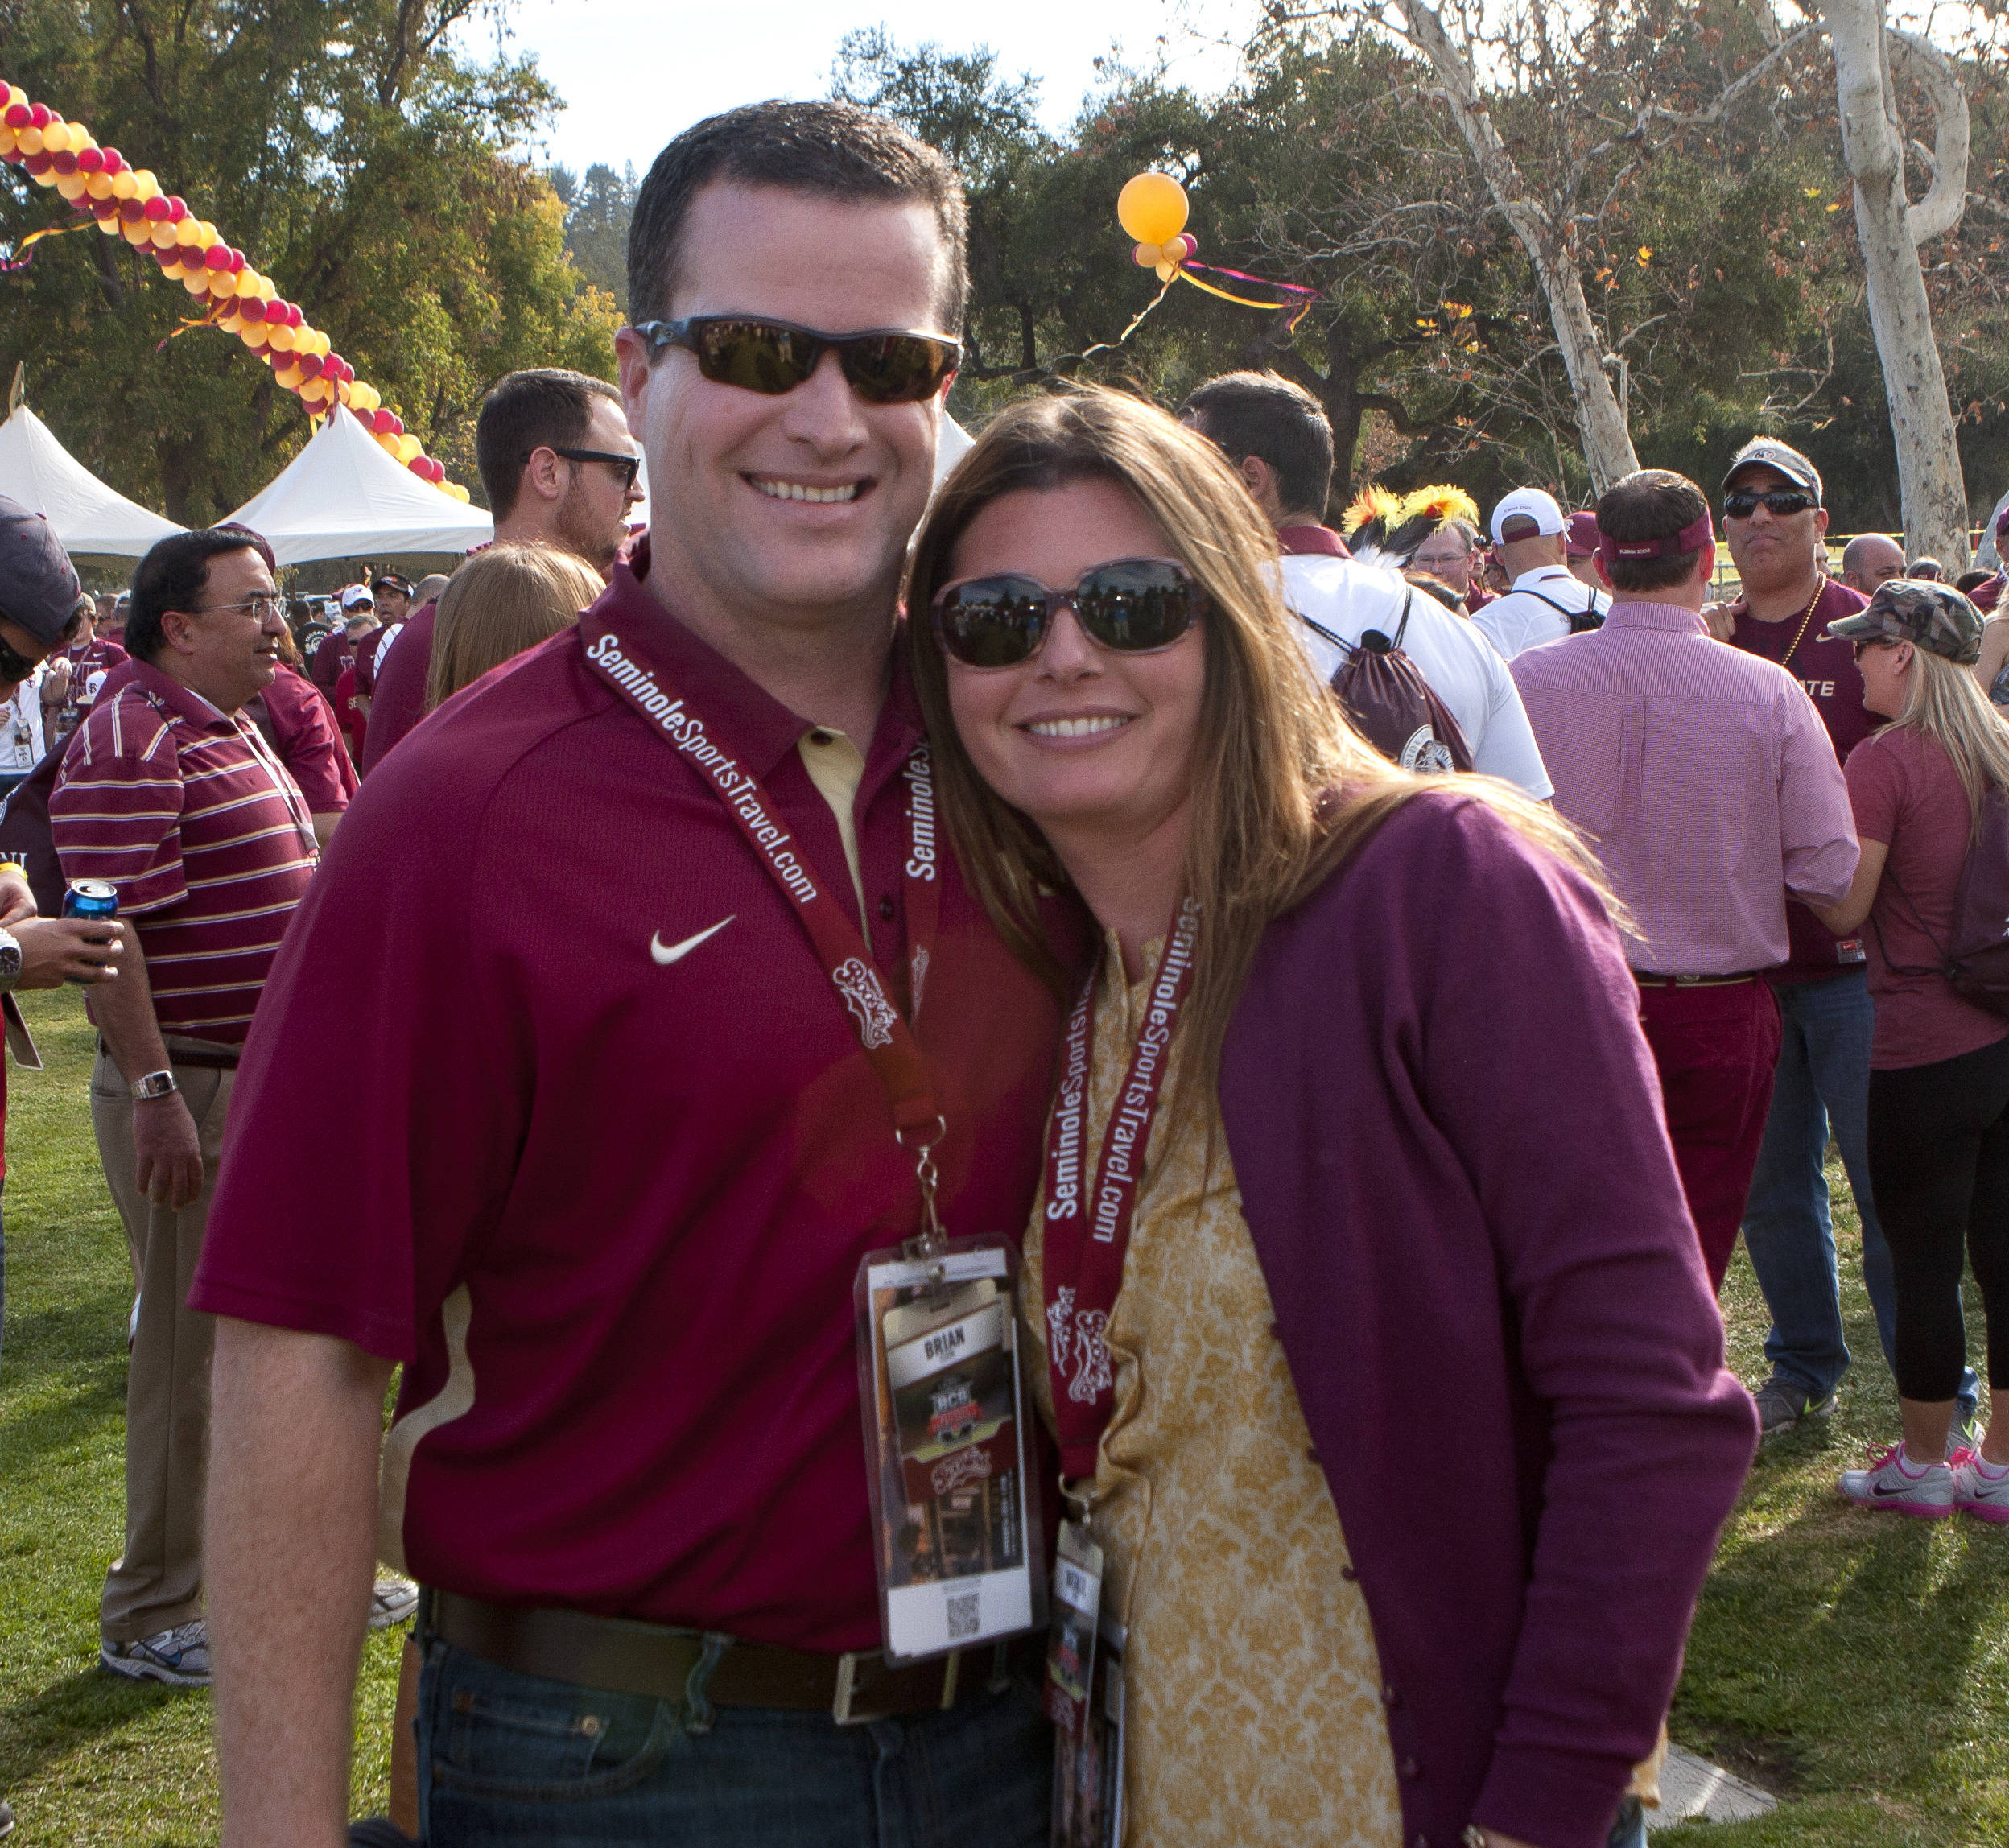 Capital Regional Medical Center's CEO Brian Cook and his wife Natalie ready for the game, FSU at BCS Championship, Rose Bowl, Pasadena, CA,  1-06-14,  (Photo by Steve Musco)